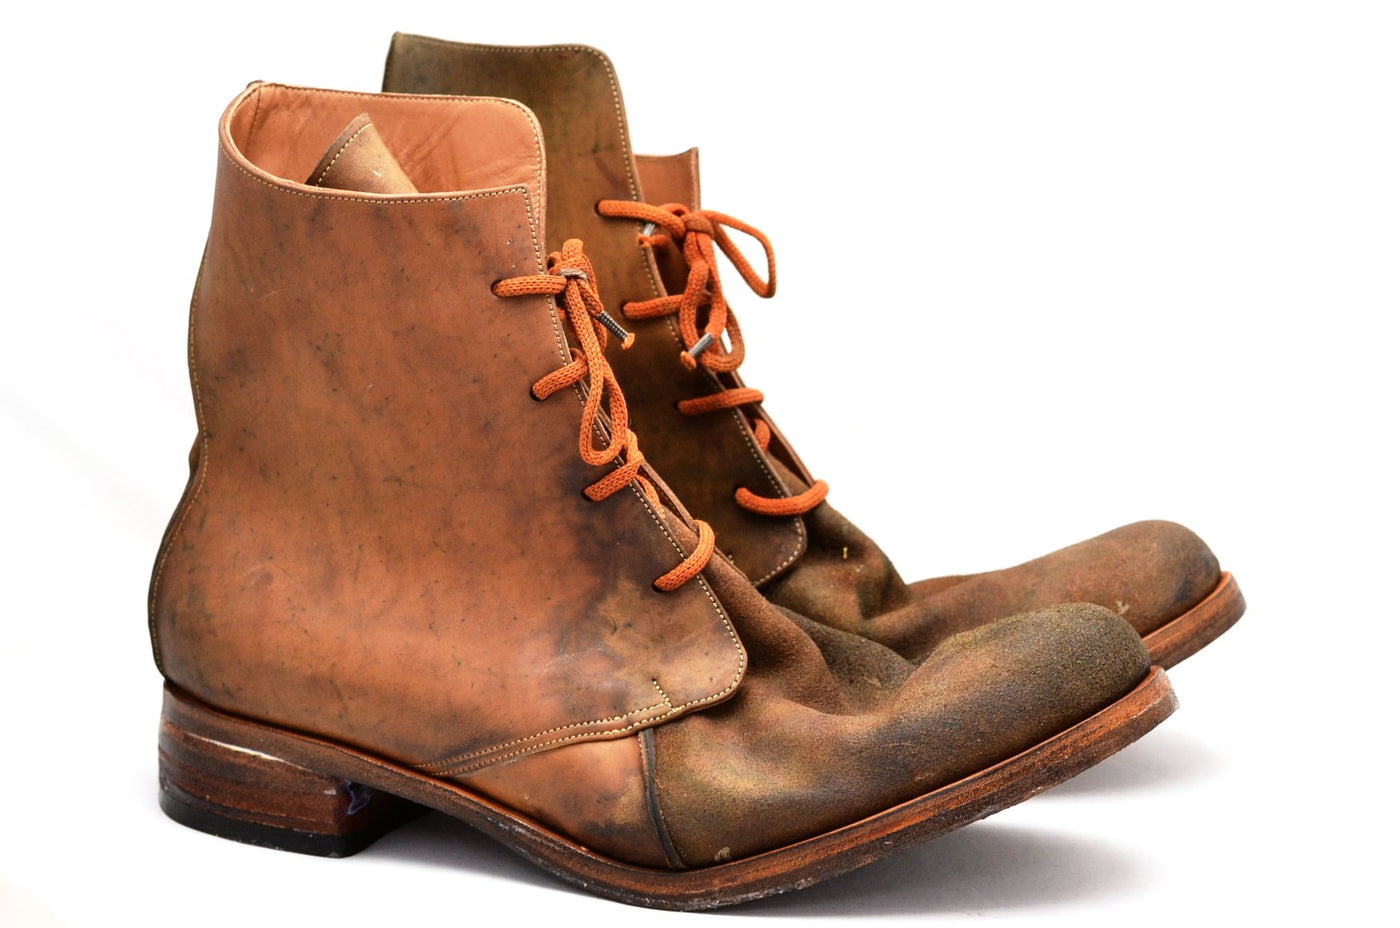 Handmade mens boots made from reverse cordovan leather in Sydney Australia.